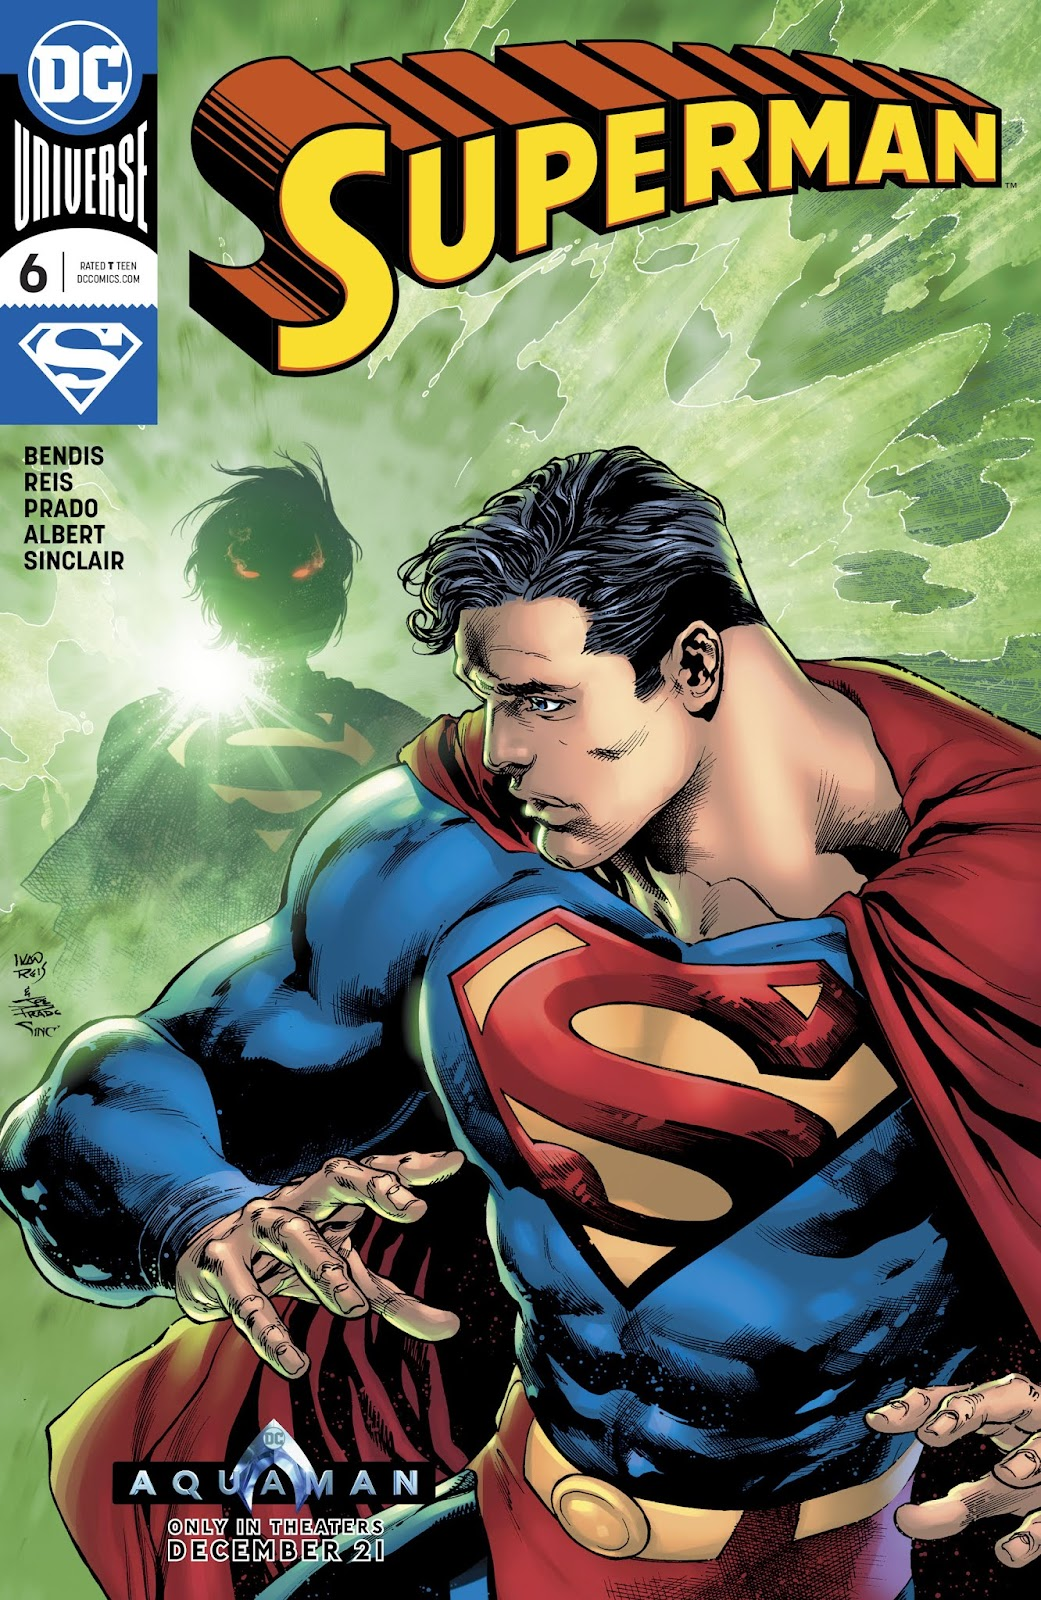 Superman Issue 6 Review - Brian Bendis